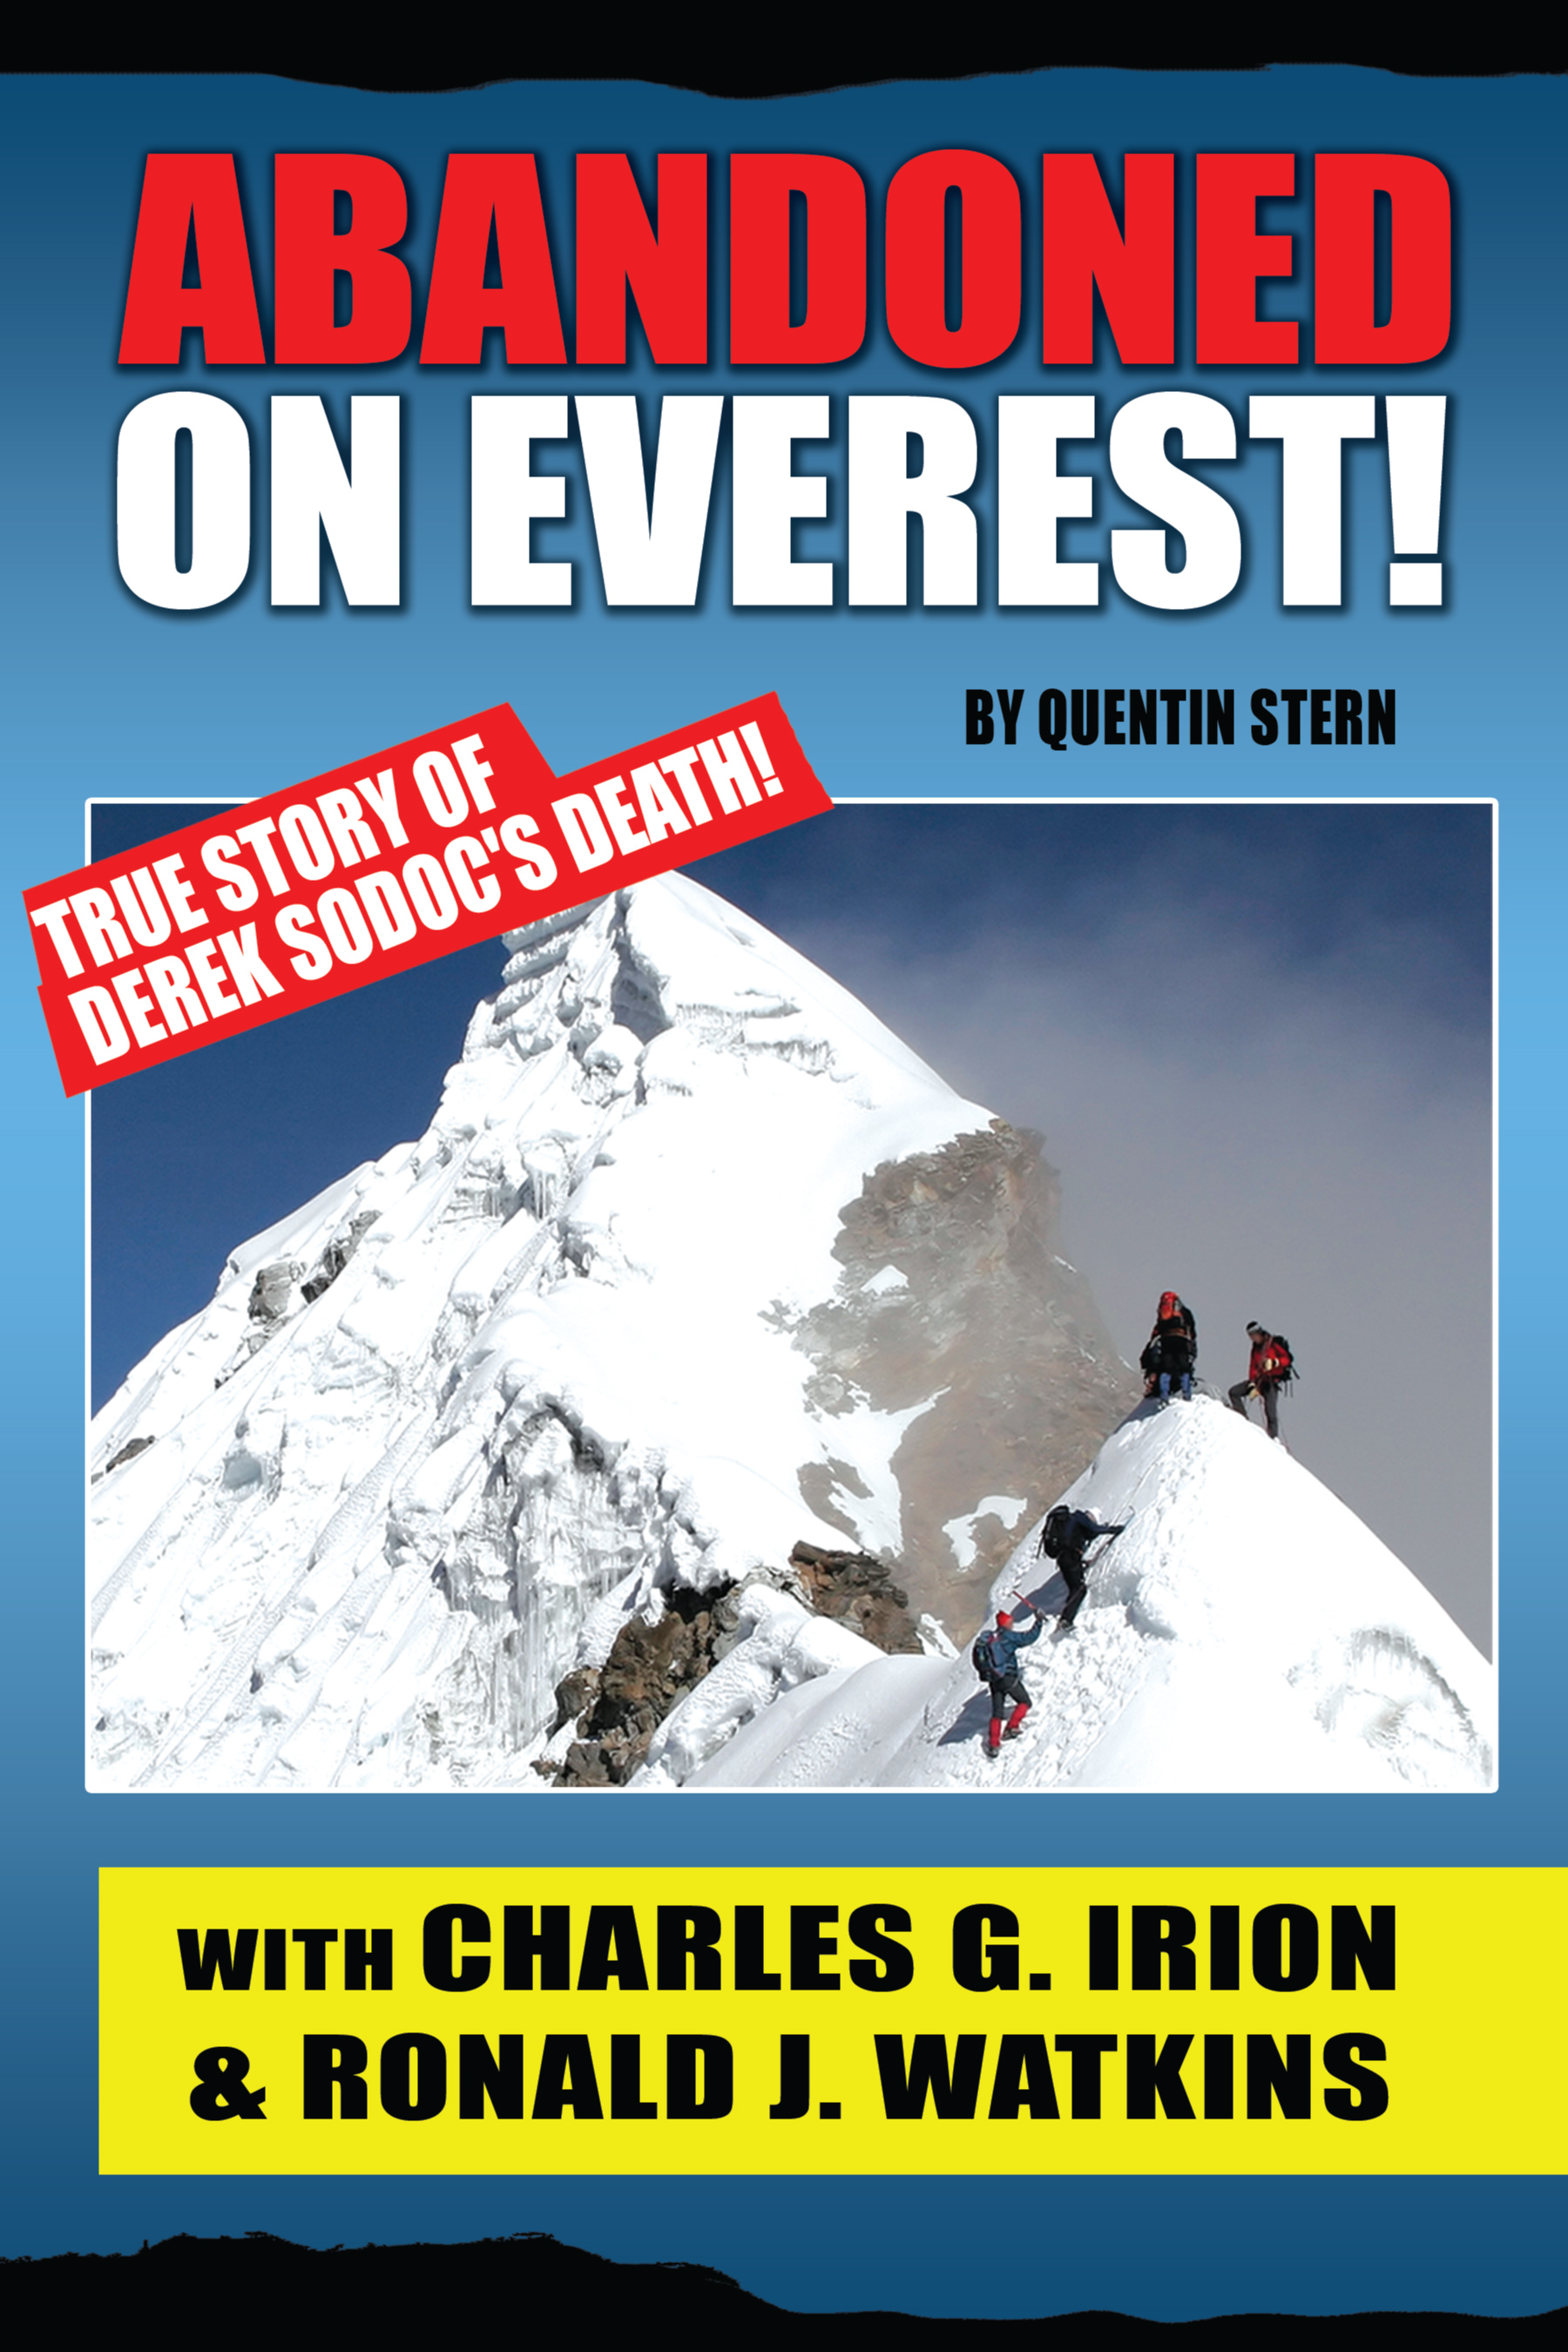 Abandoned On Everest By: Charles G. Irion,Ronald J. Watkins